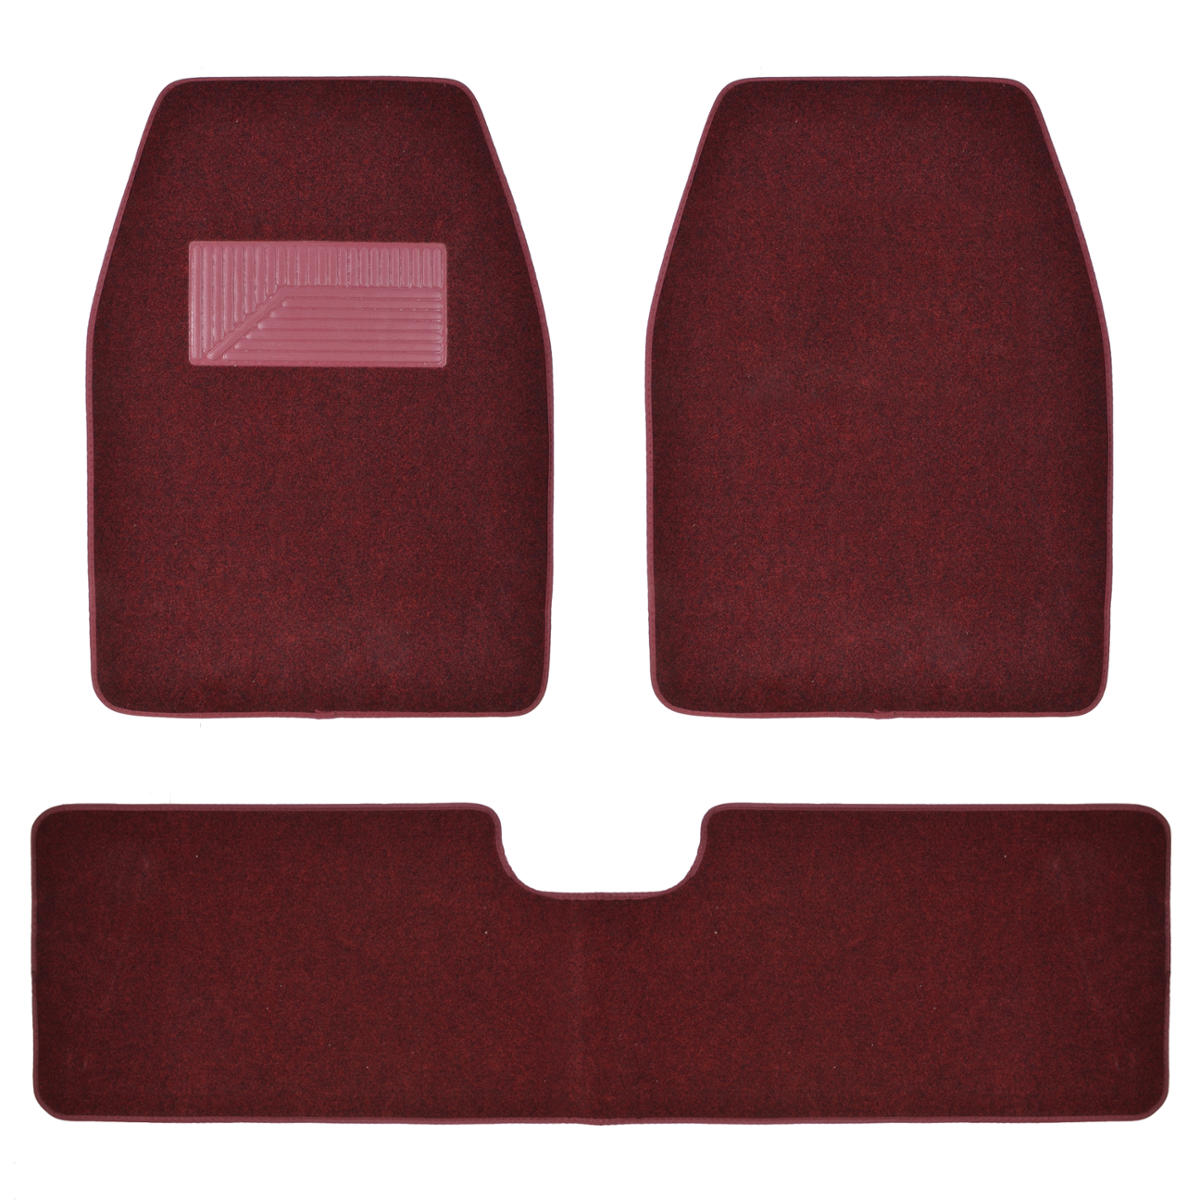 3pc Set Burgundy Heavy Duty Carpet SUV Van Pickup Car